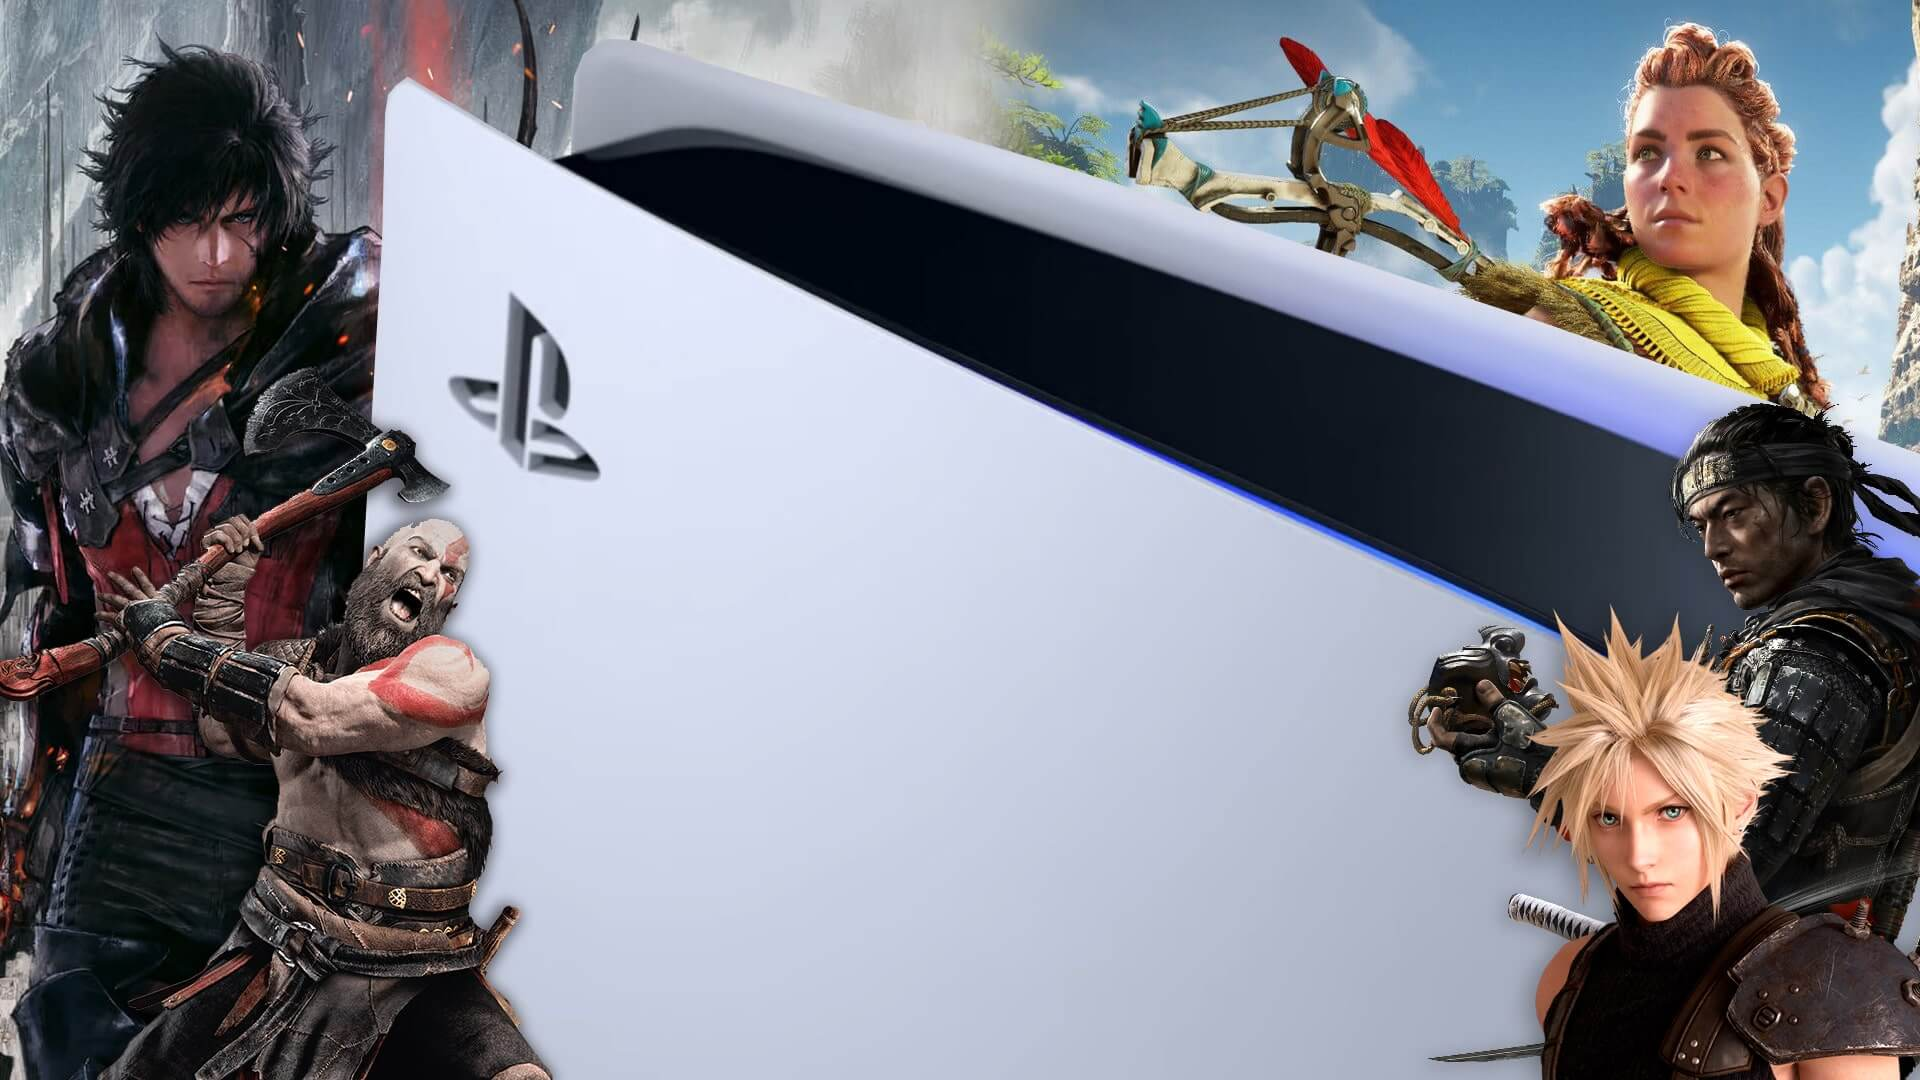 When Will Sony Release PS5 Limited Edition Bundles, Slim and Pro Version Consoles?